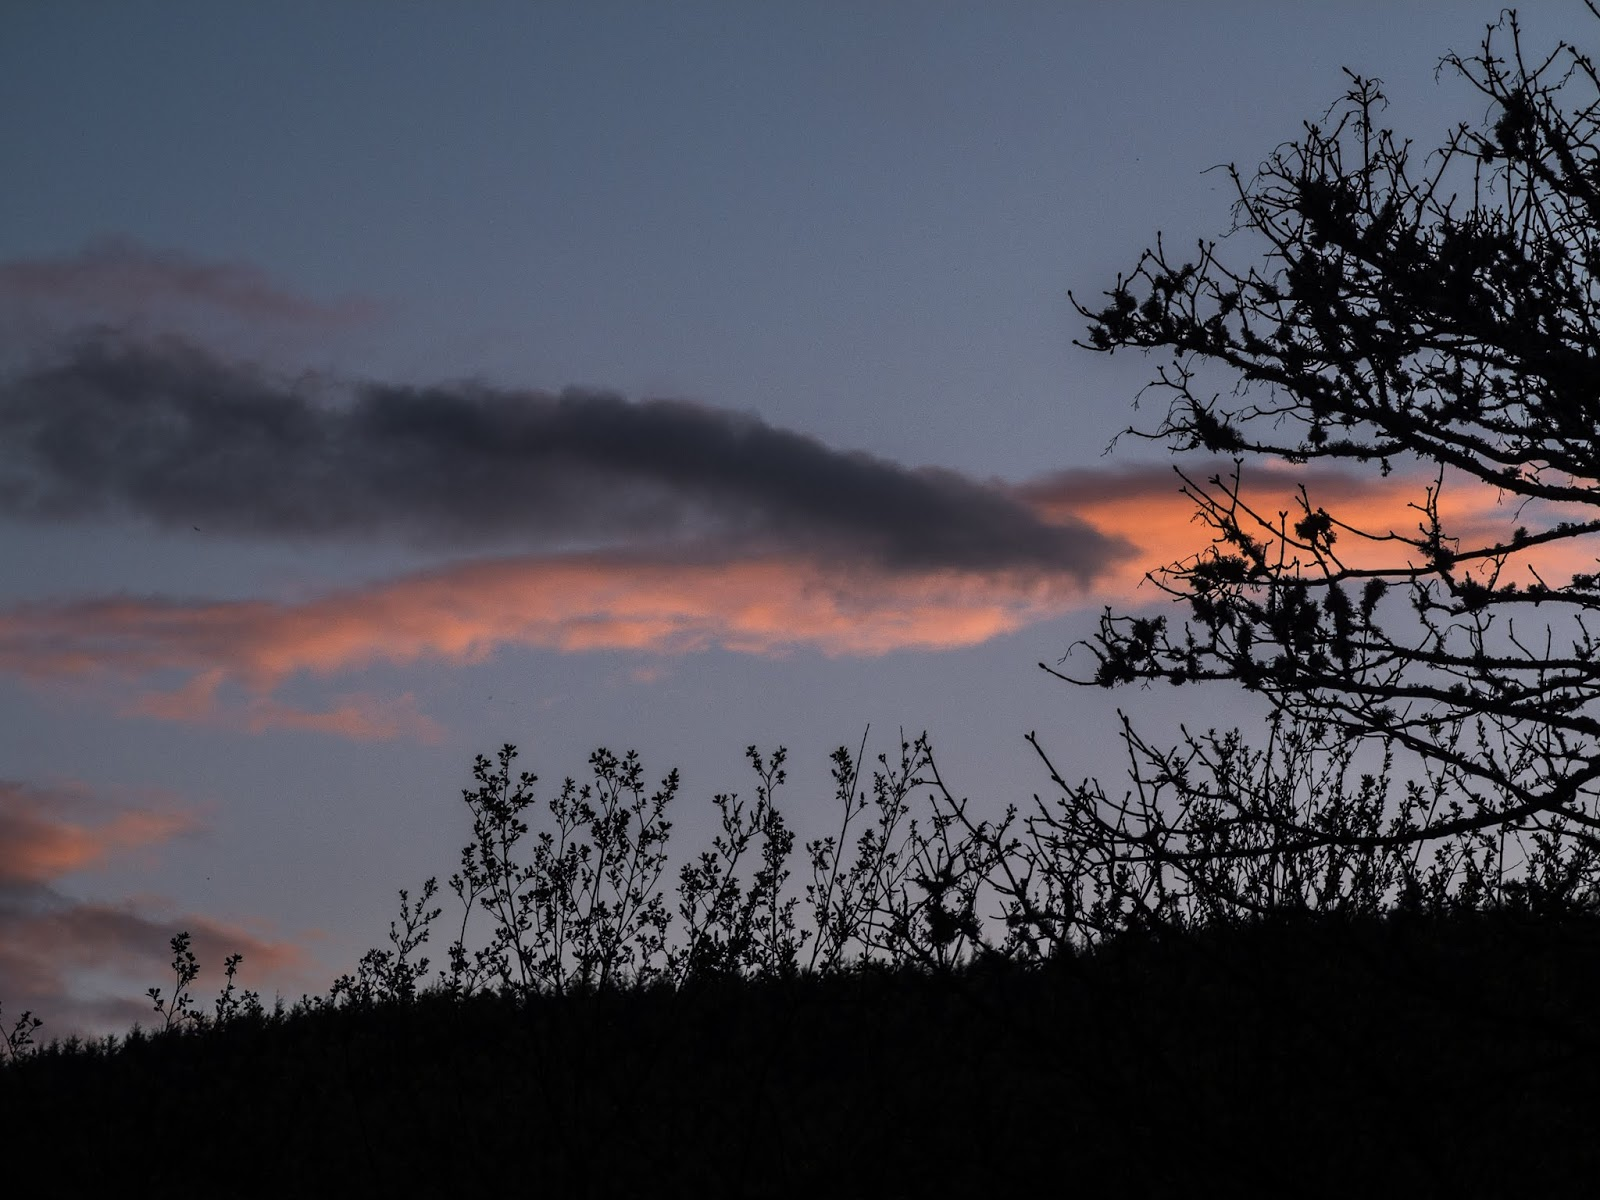 Two clouds blue and red at sunset over a hill with silhouette branches.